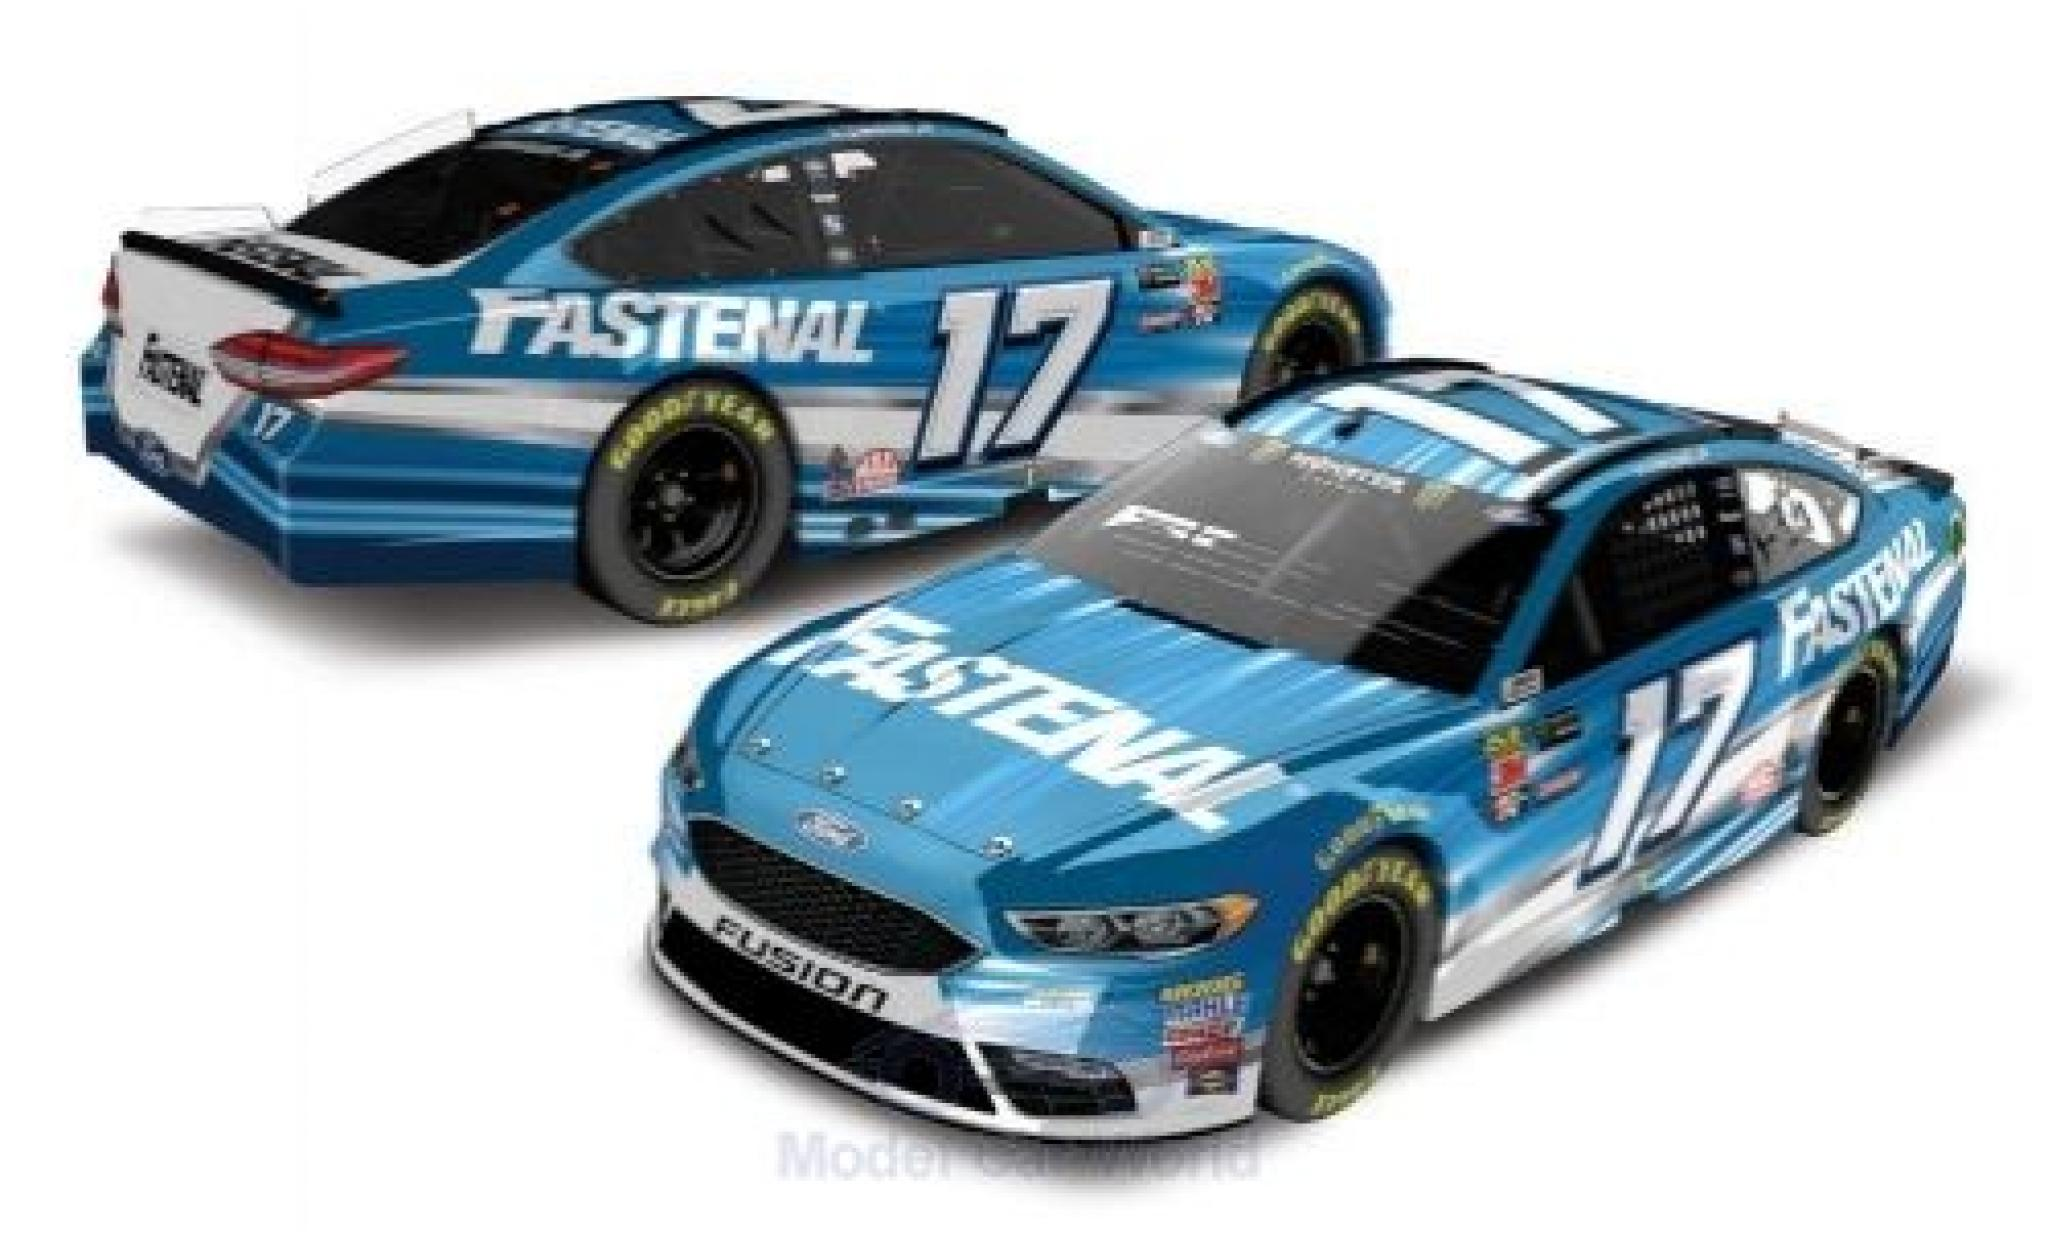 Ford Fusion 1/64 Lionel Racing No.17 Roush Fenway Racing Fastenal Nascar 2018 R.Stenhouse Jr.